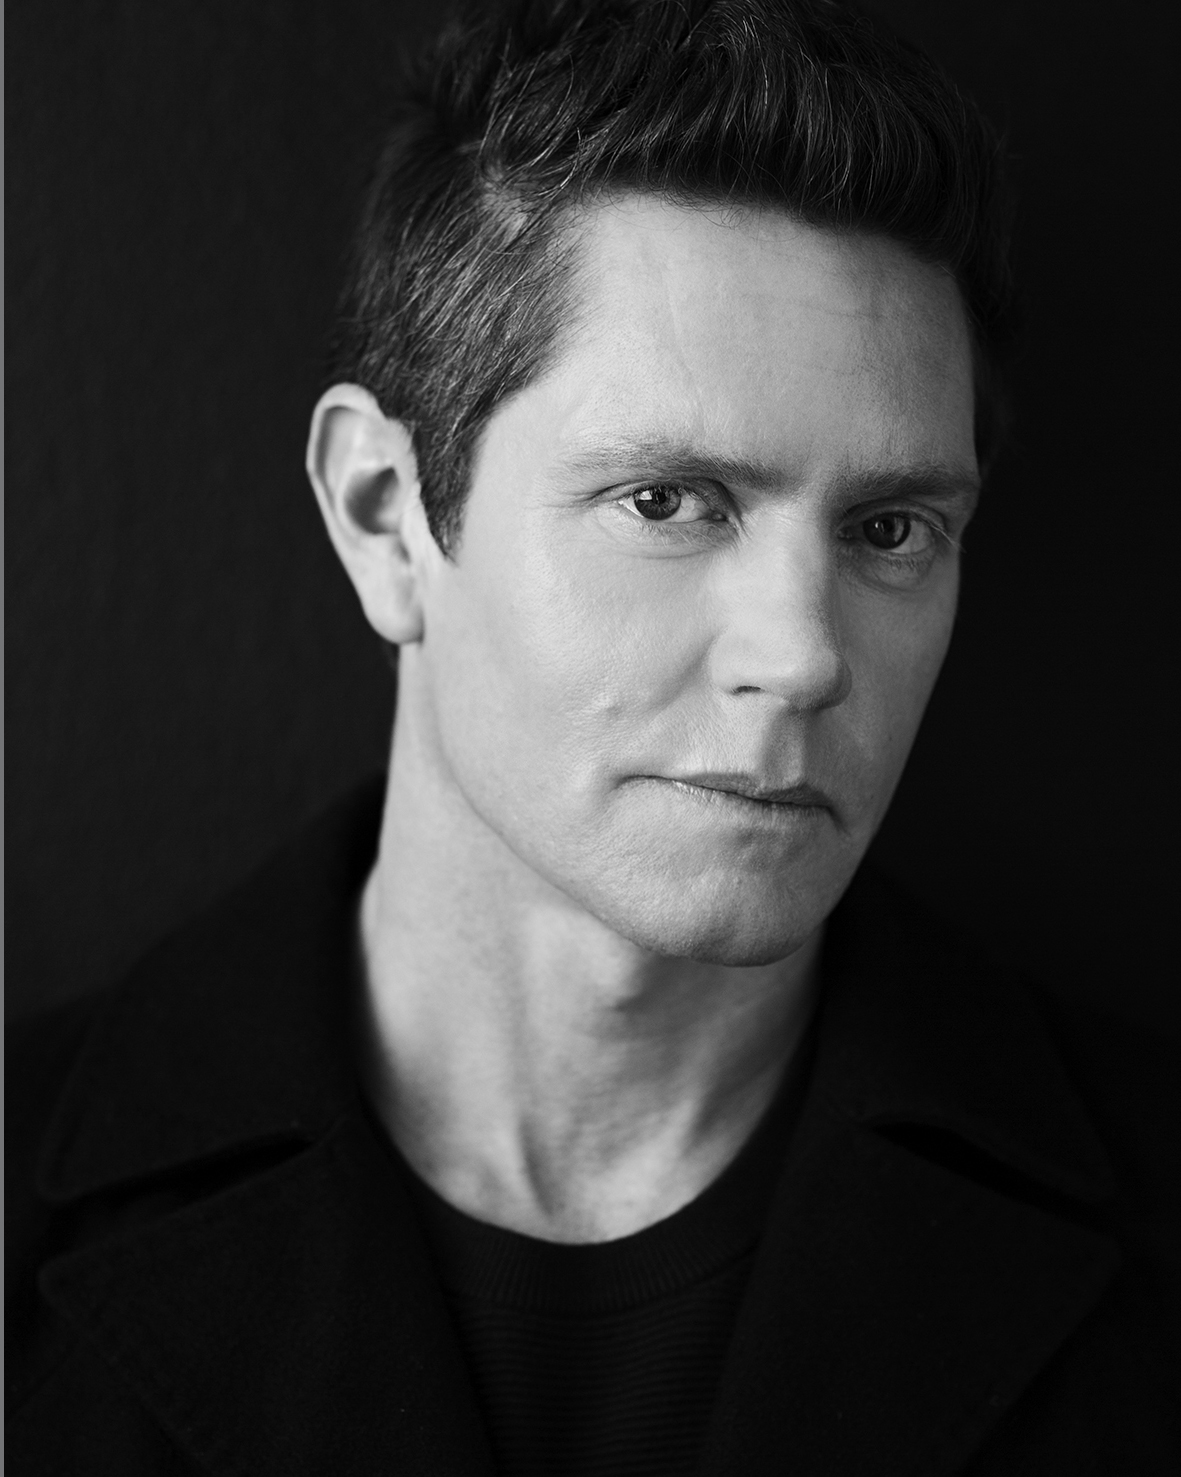 nathan page biographynathan page wife, nathan page actor biography, nathan page essie davis, nathan page actor, nathan page actor wife, nathan page images, nathan page age, nathan page biography, nathan page imdb, nathan page australian actor, nathan page married, nathan page interview, nathan page birthday, nathan page born, nathan page facebook, nathan page cyclist, nathan page birthdate, nathan page instagram, nathan page and sarah jayne howard, nathan page hiding